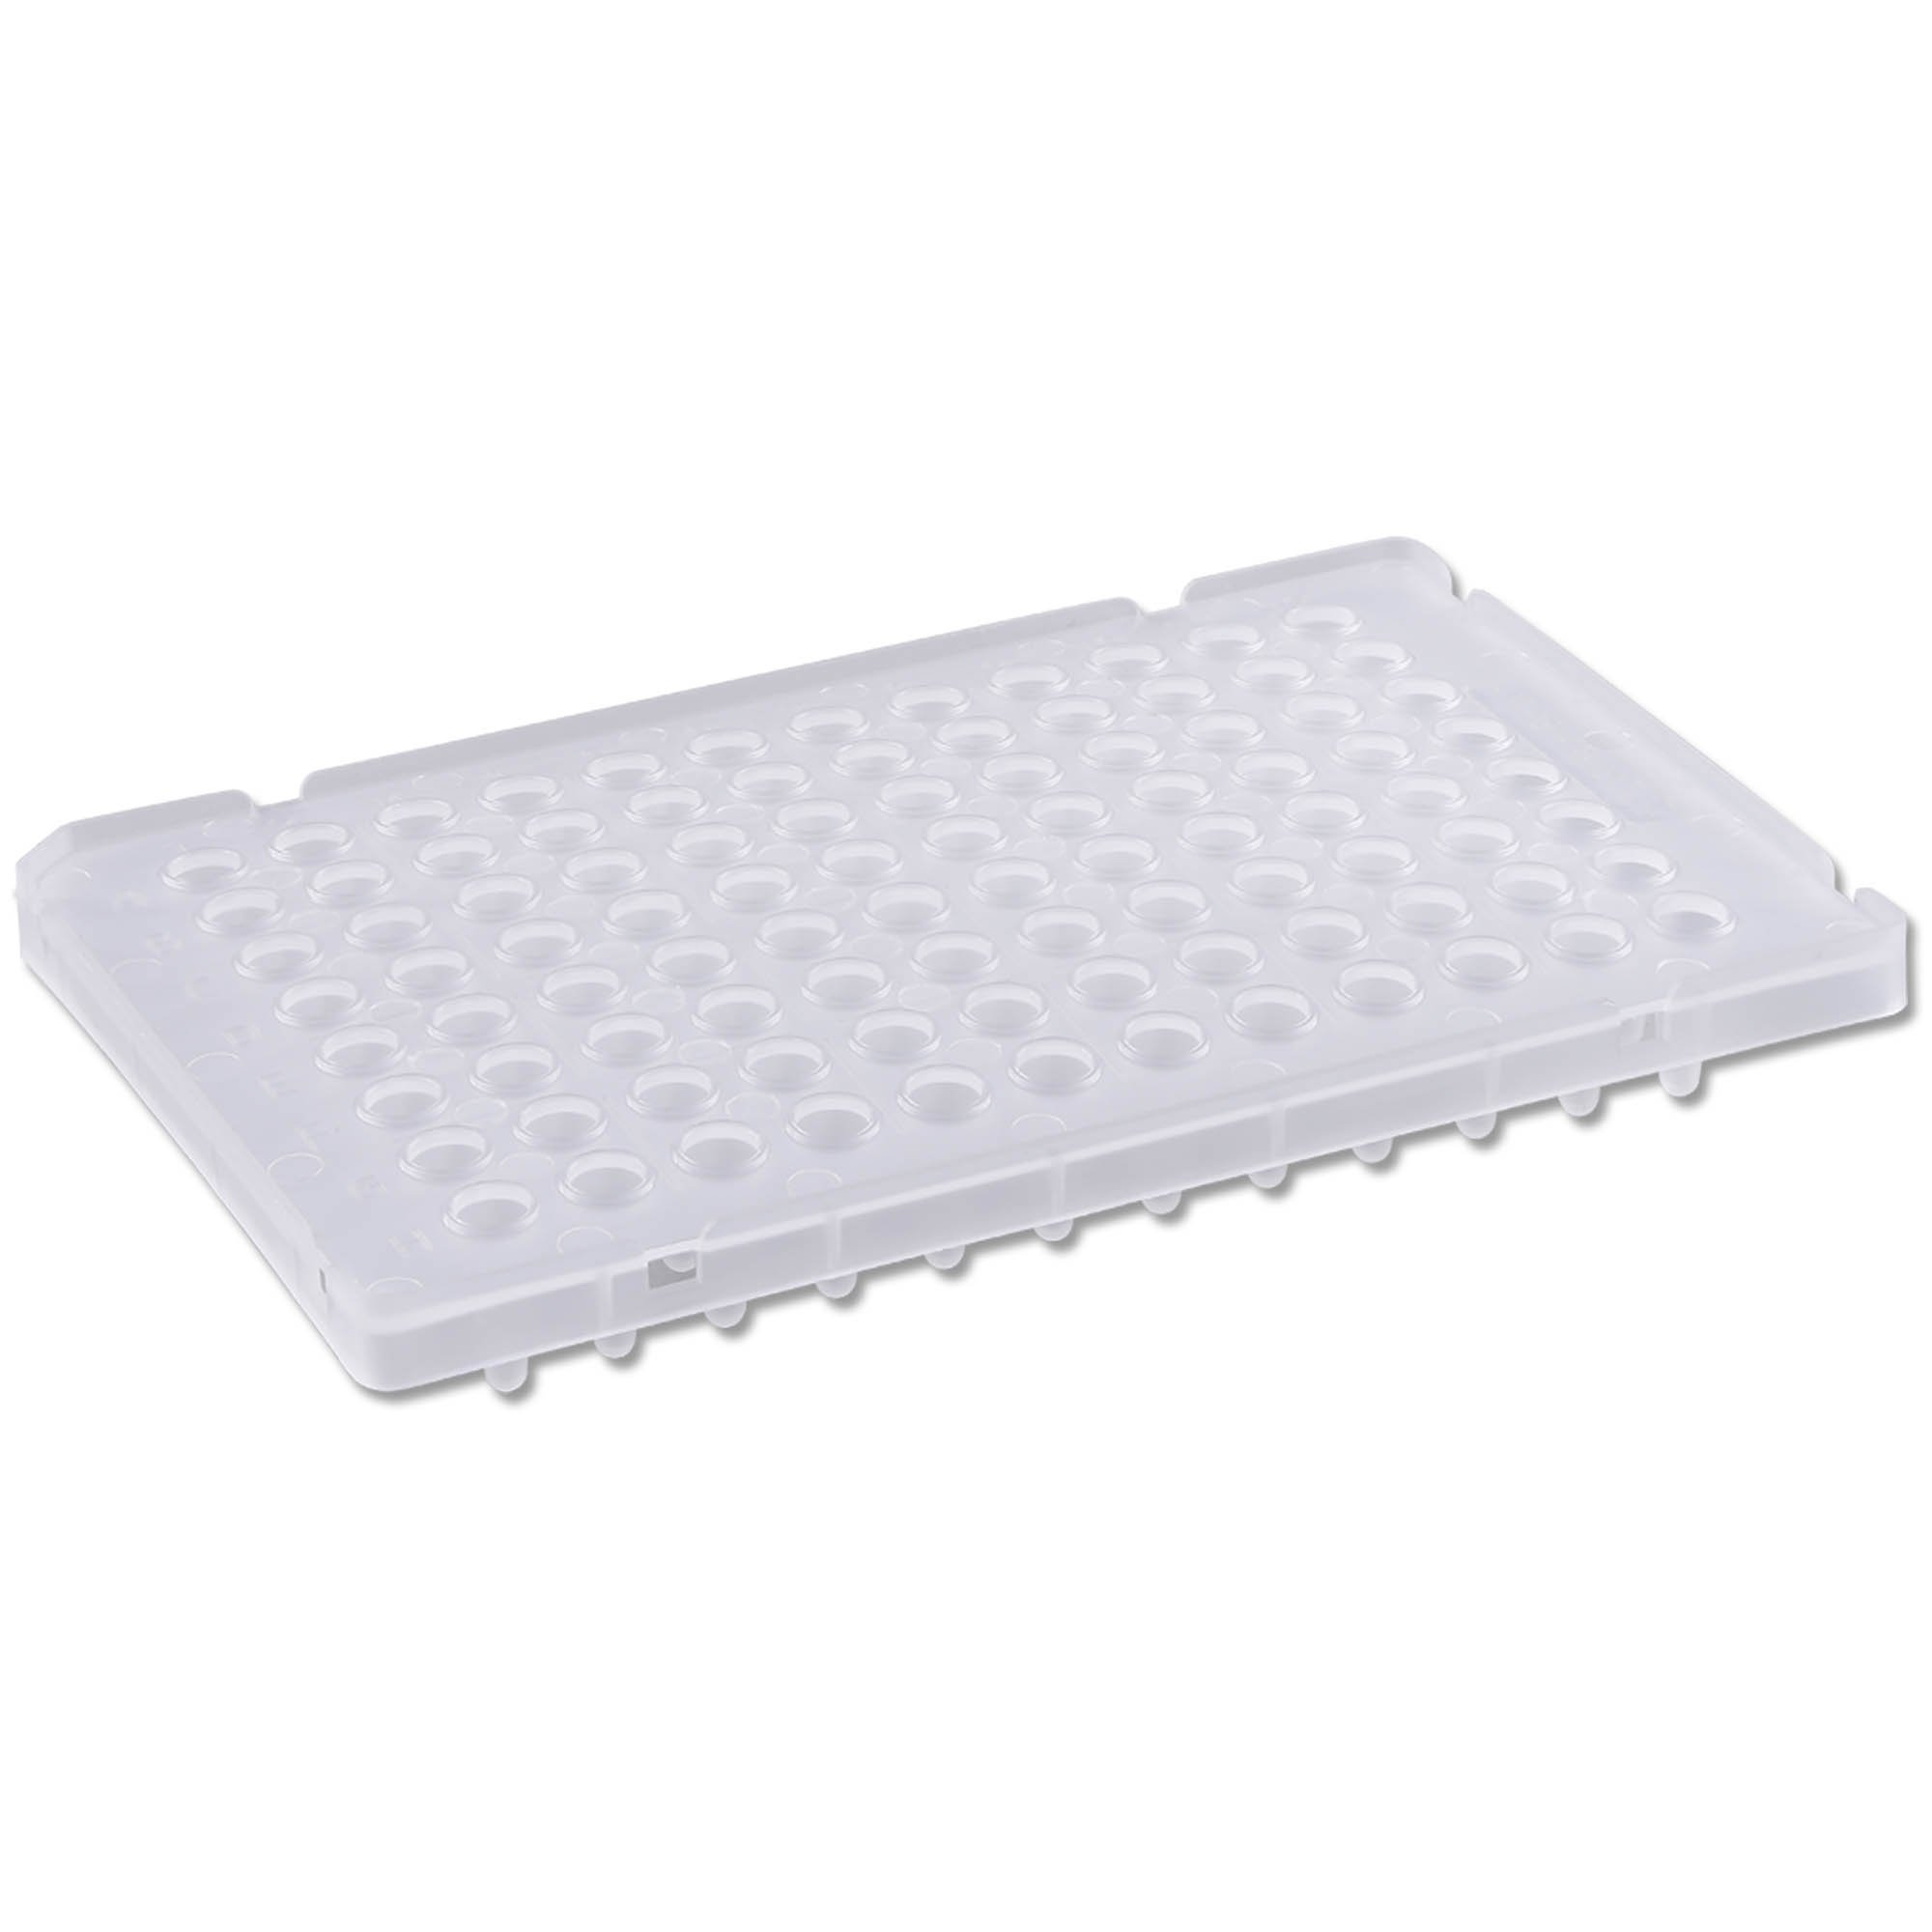 PureAmp Low Profile/Fast 96-Well x 0.1mL PCR Plates - Semi Skirted with Raised Rim, Natural (10 Packs of 50 per Pack) - ON BACKORDER UNTIL 6/30/2021